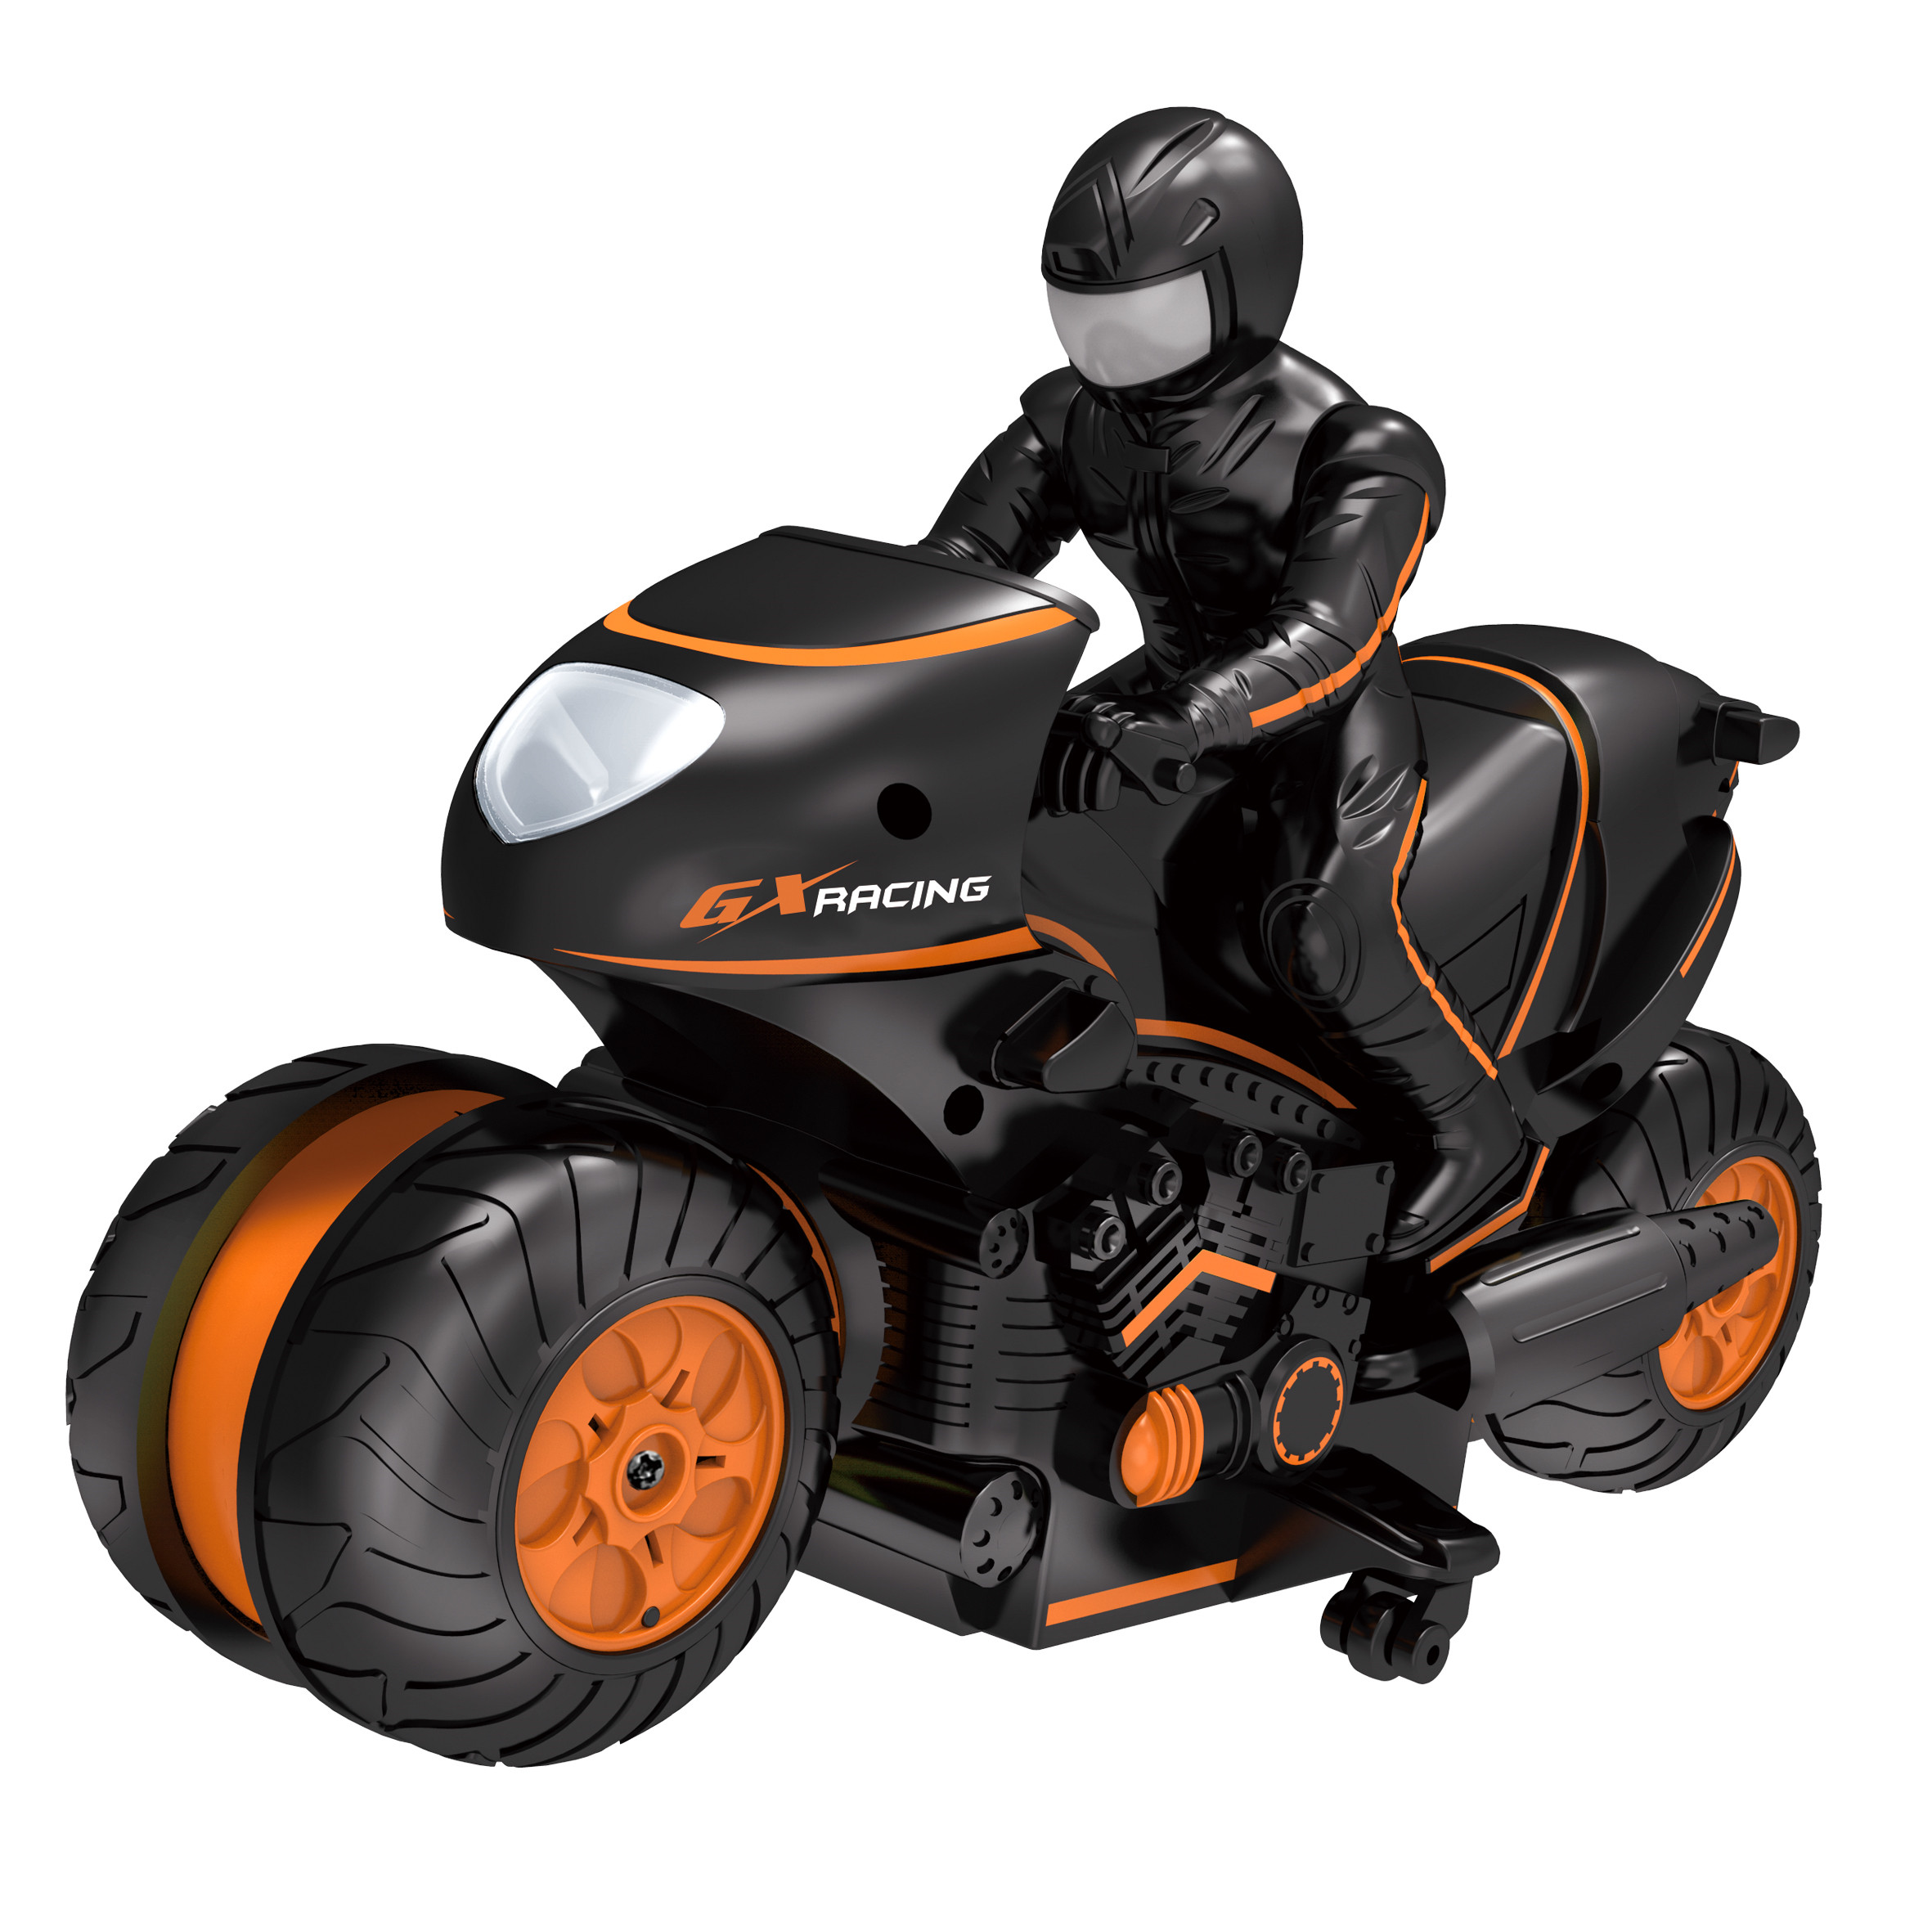 RC Car Mini Motorcycle Remote Control Motor Electric Motorcycle 2.4 Ghz  2WD High Speed Toys For Children Gift Orange Color